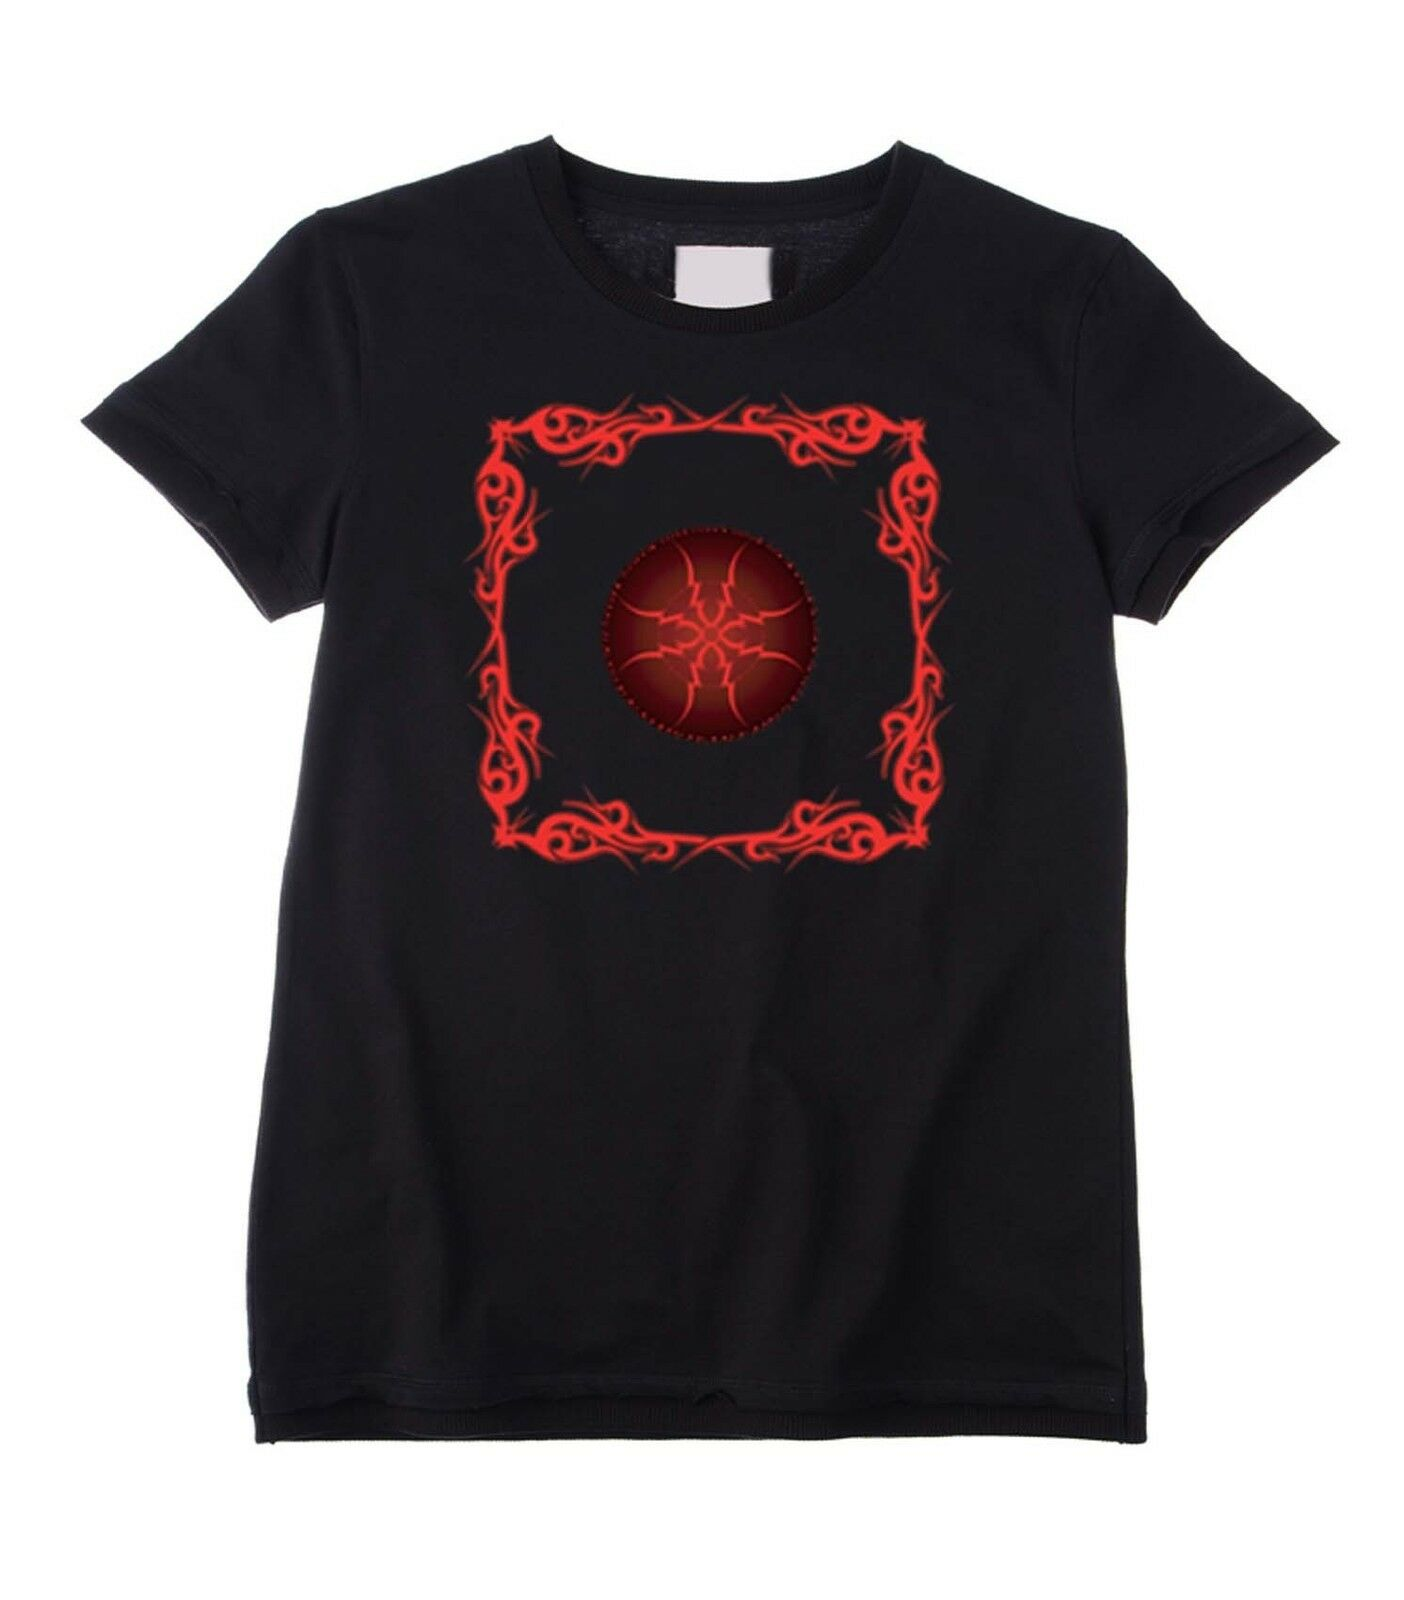 Details about CELTIC FIRE UNISEX KIDS T-SHIRT - Pagan Druid Wicca Goth  Gothic Childrens